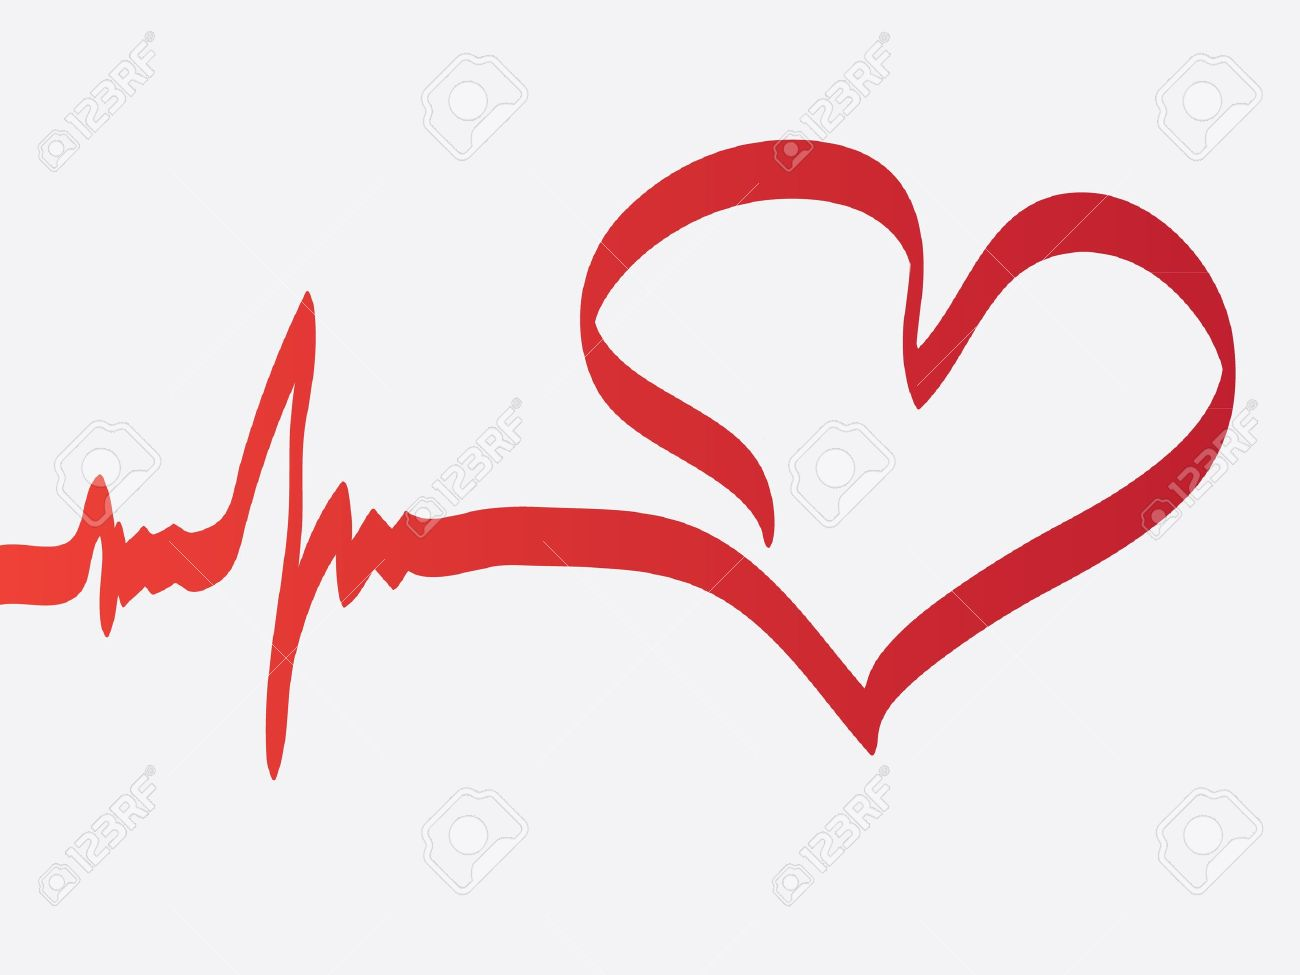 Heartbeat line clipart free.